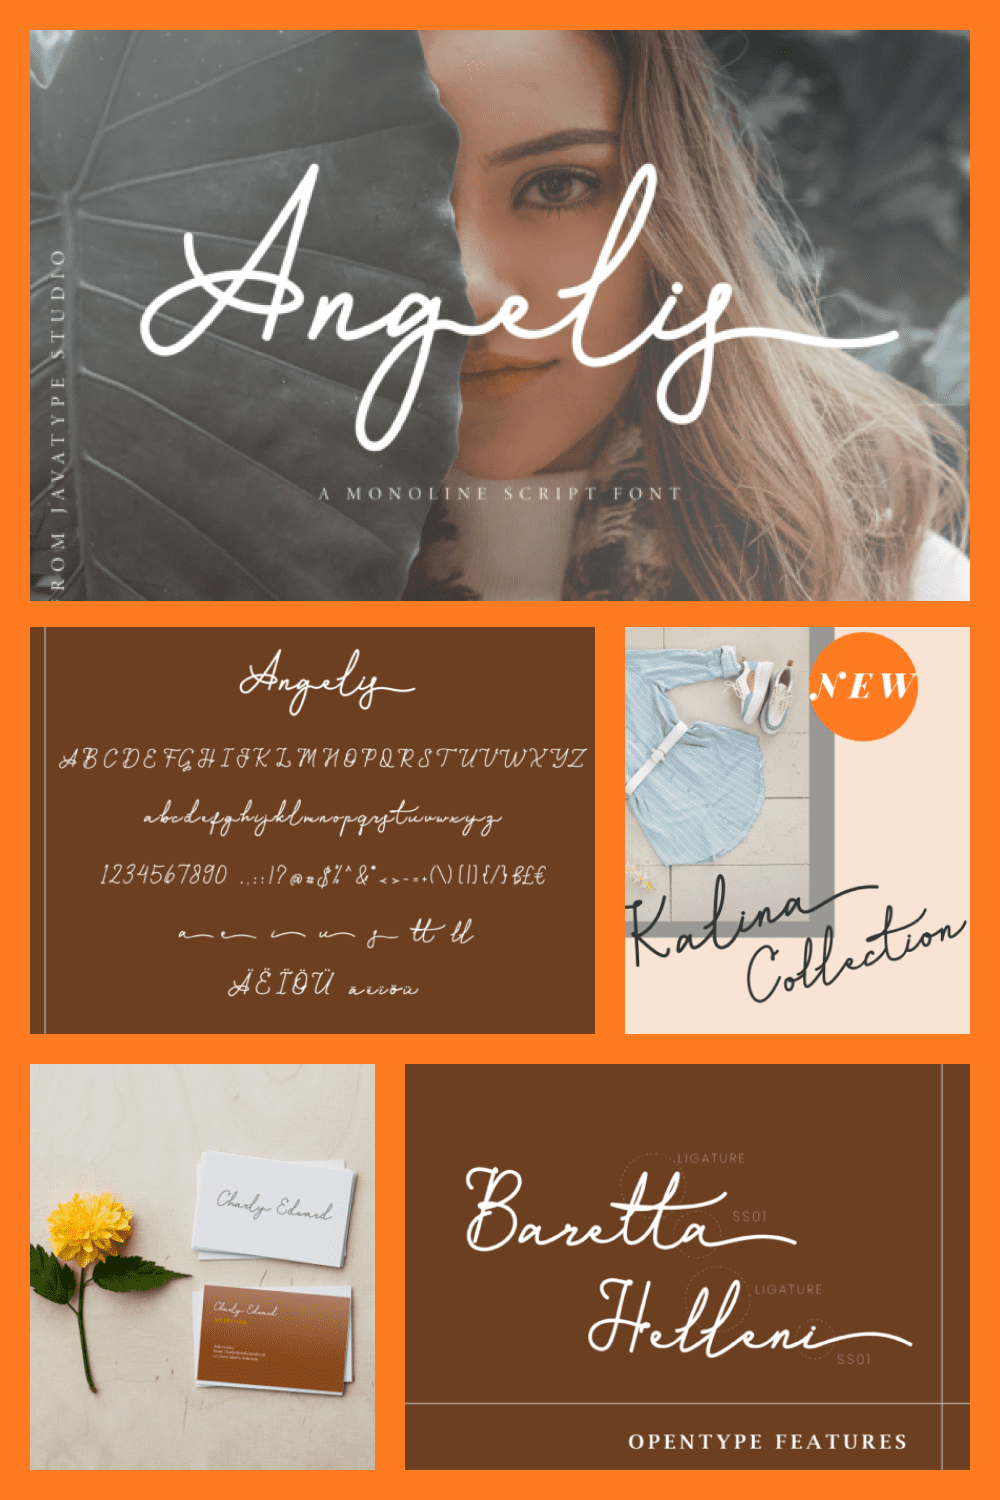 Angelis Script is a monoline script font which natural movement and elegant for signature style.